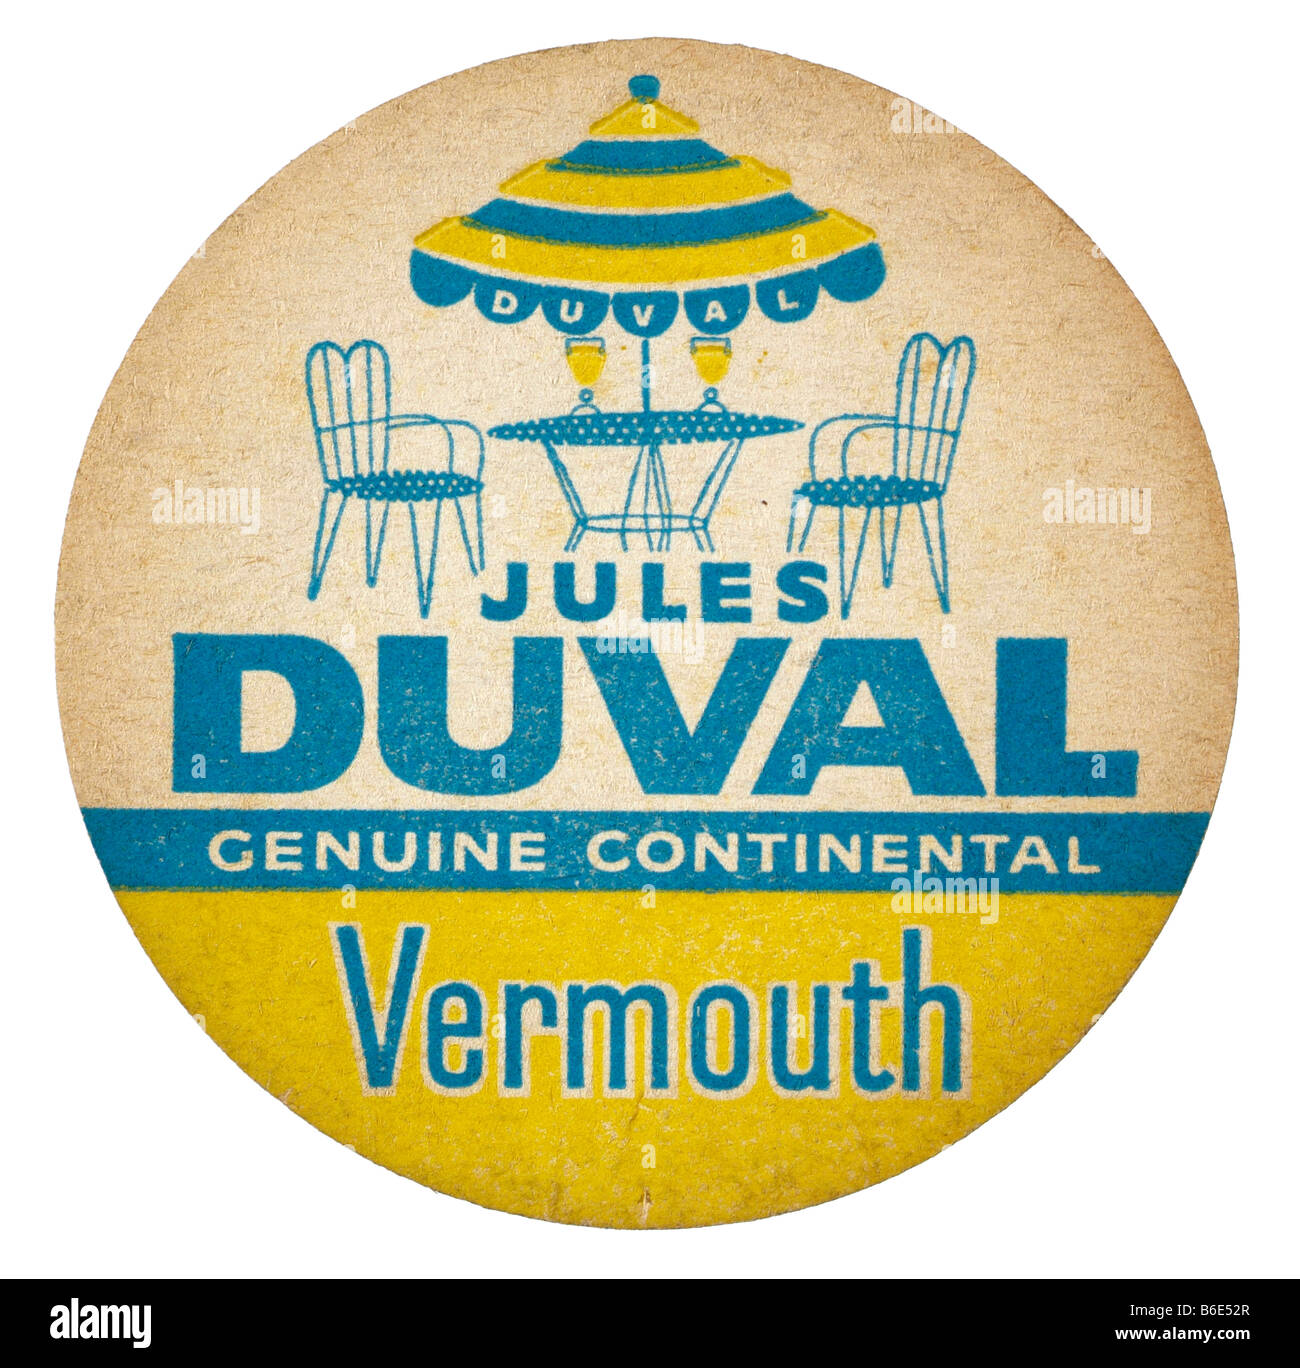 jules duval genuine continental vermouth - Stock Image